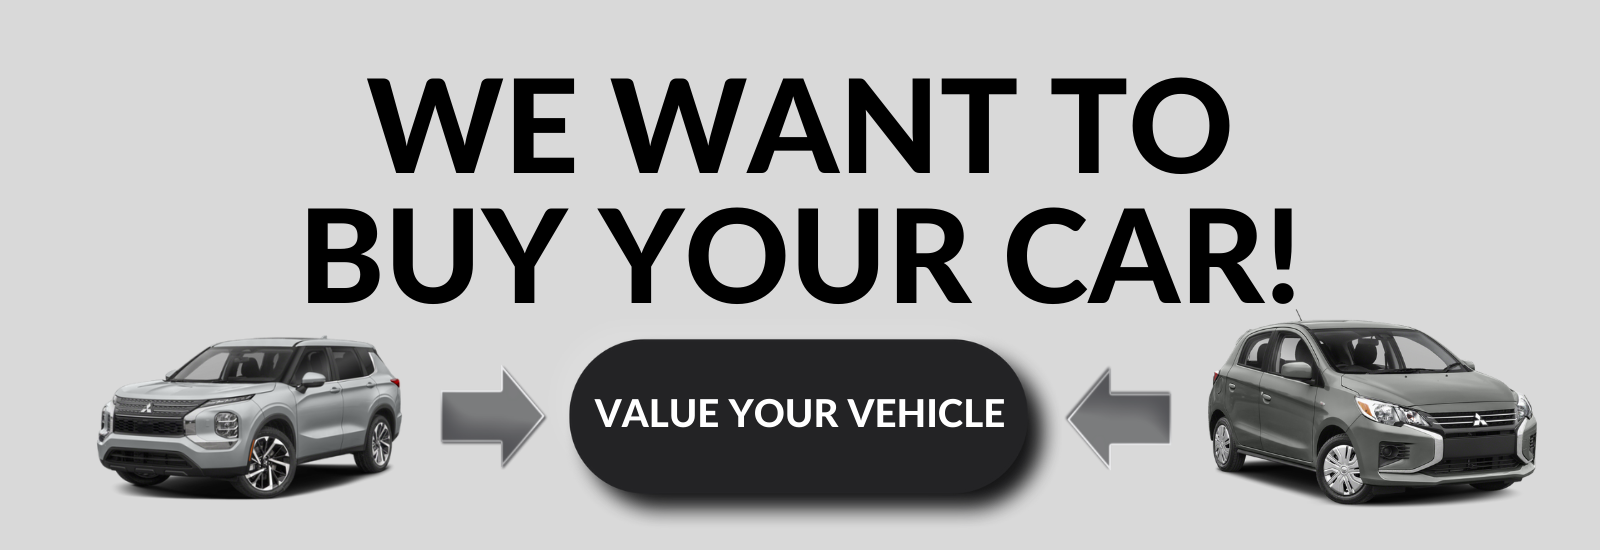 WE WANT TO BUY YOUR CAR! mitsubishi west